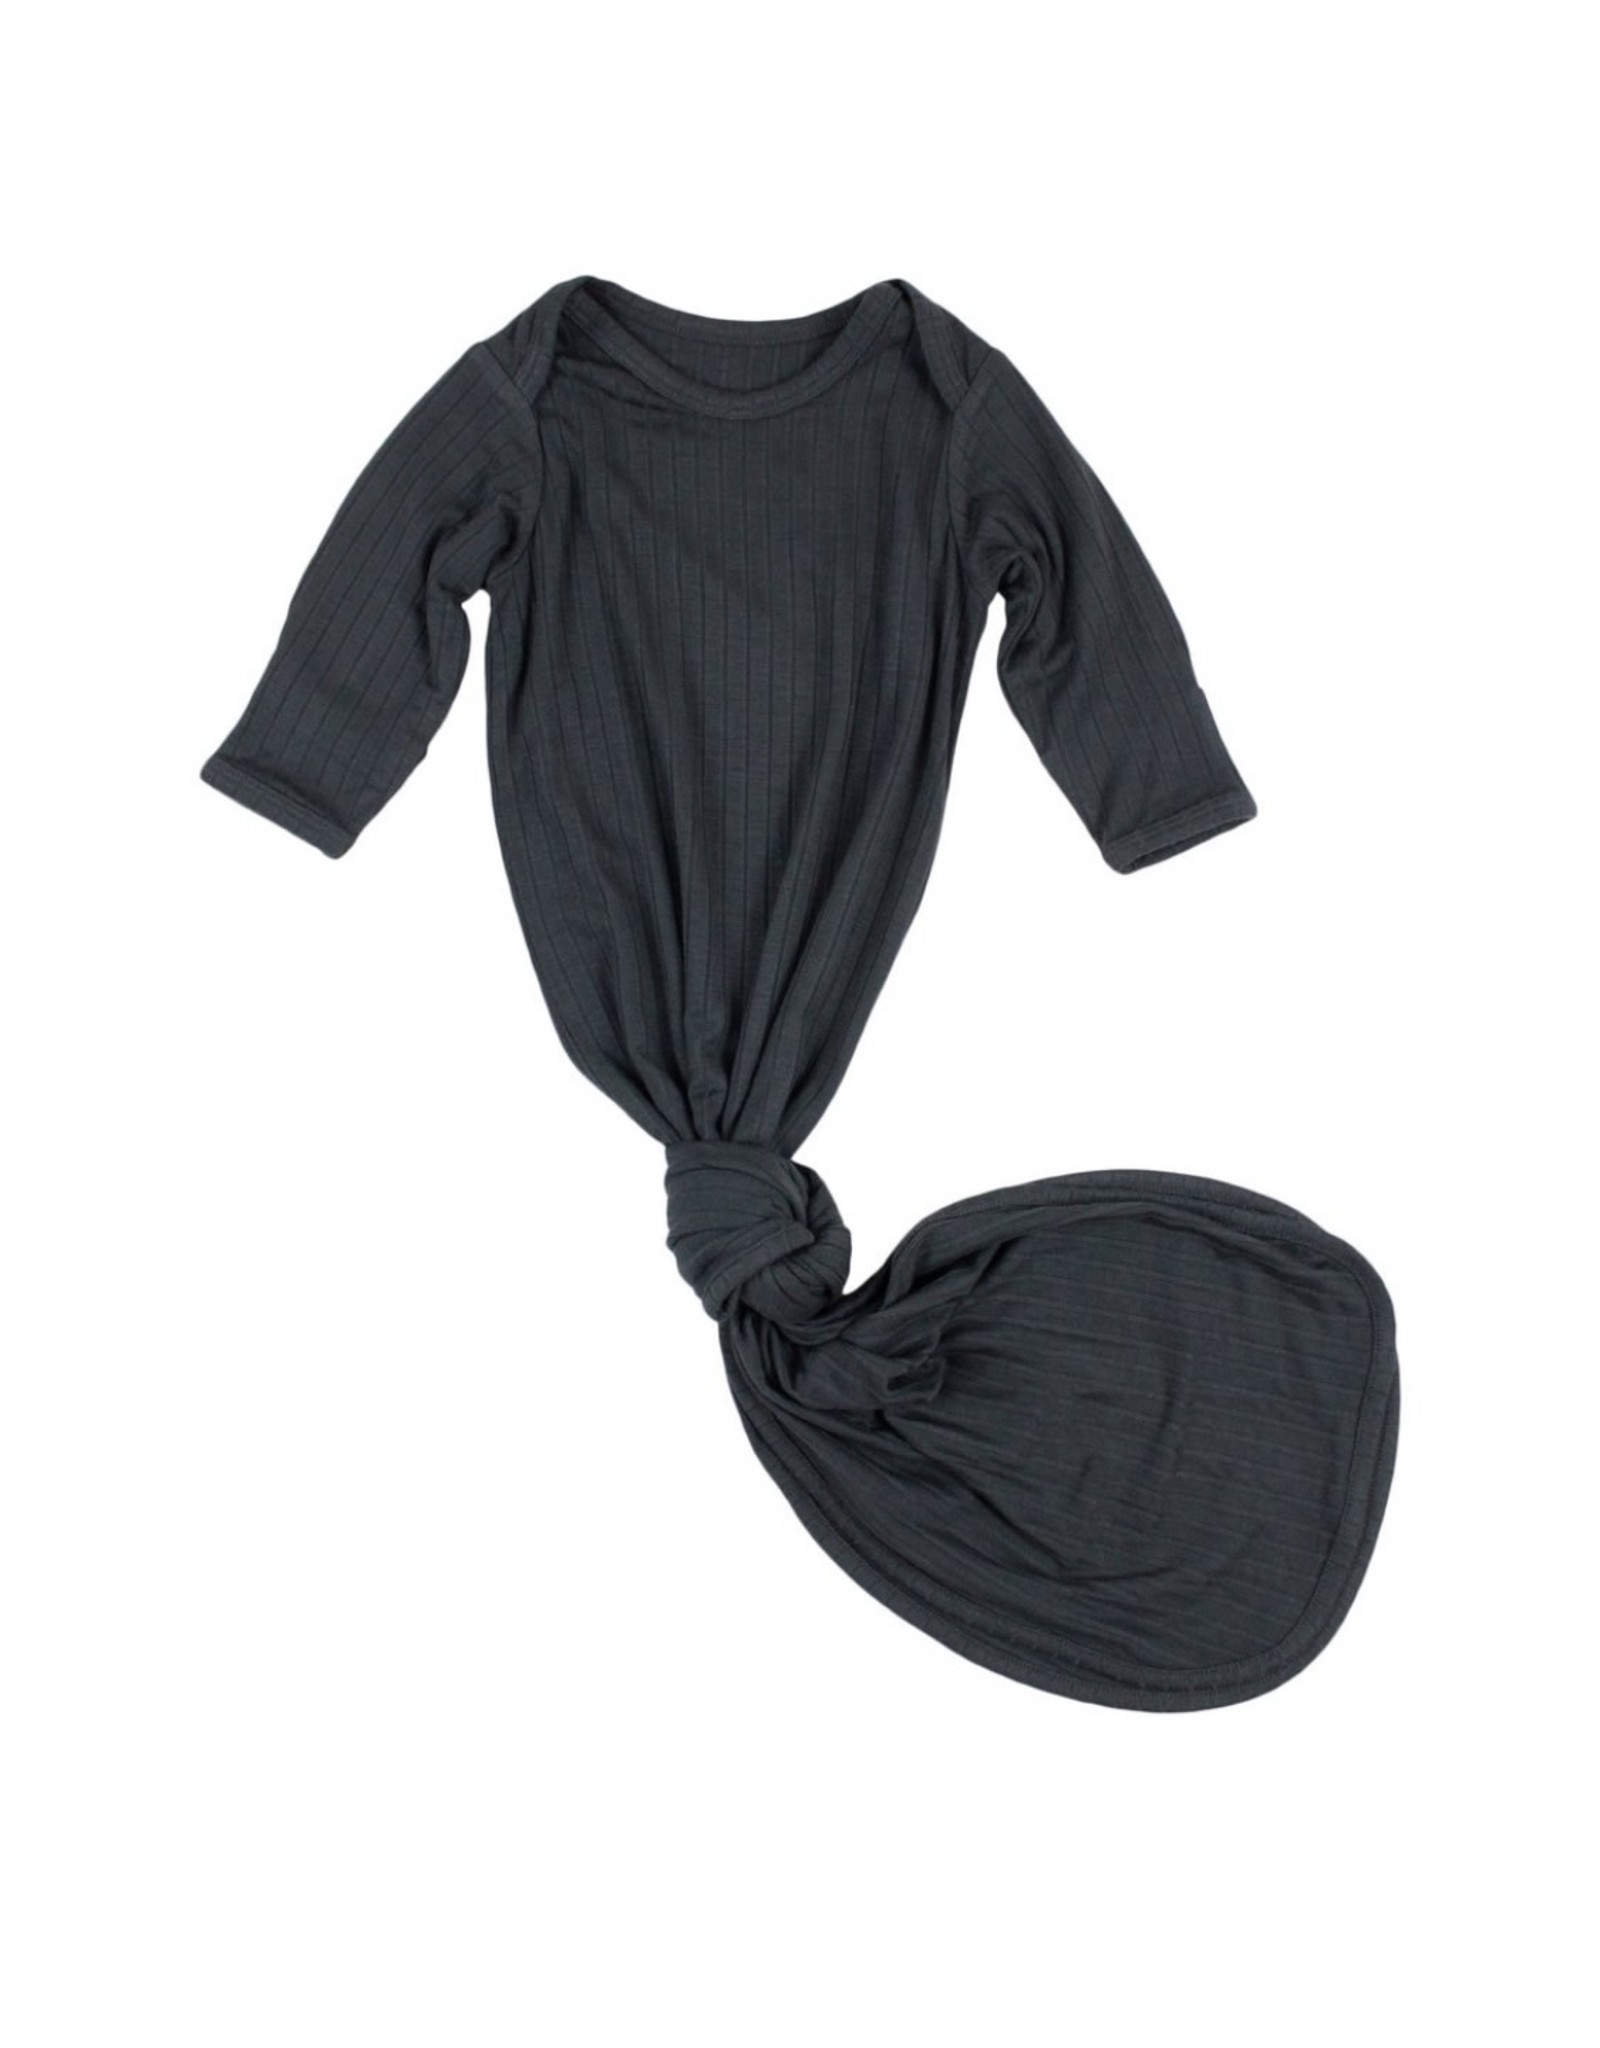 Brave Little Ones Brave Little Ones- Antique Black Ribbed Knotted Gown 0/3M